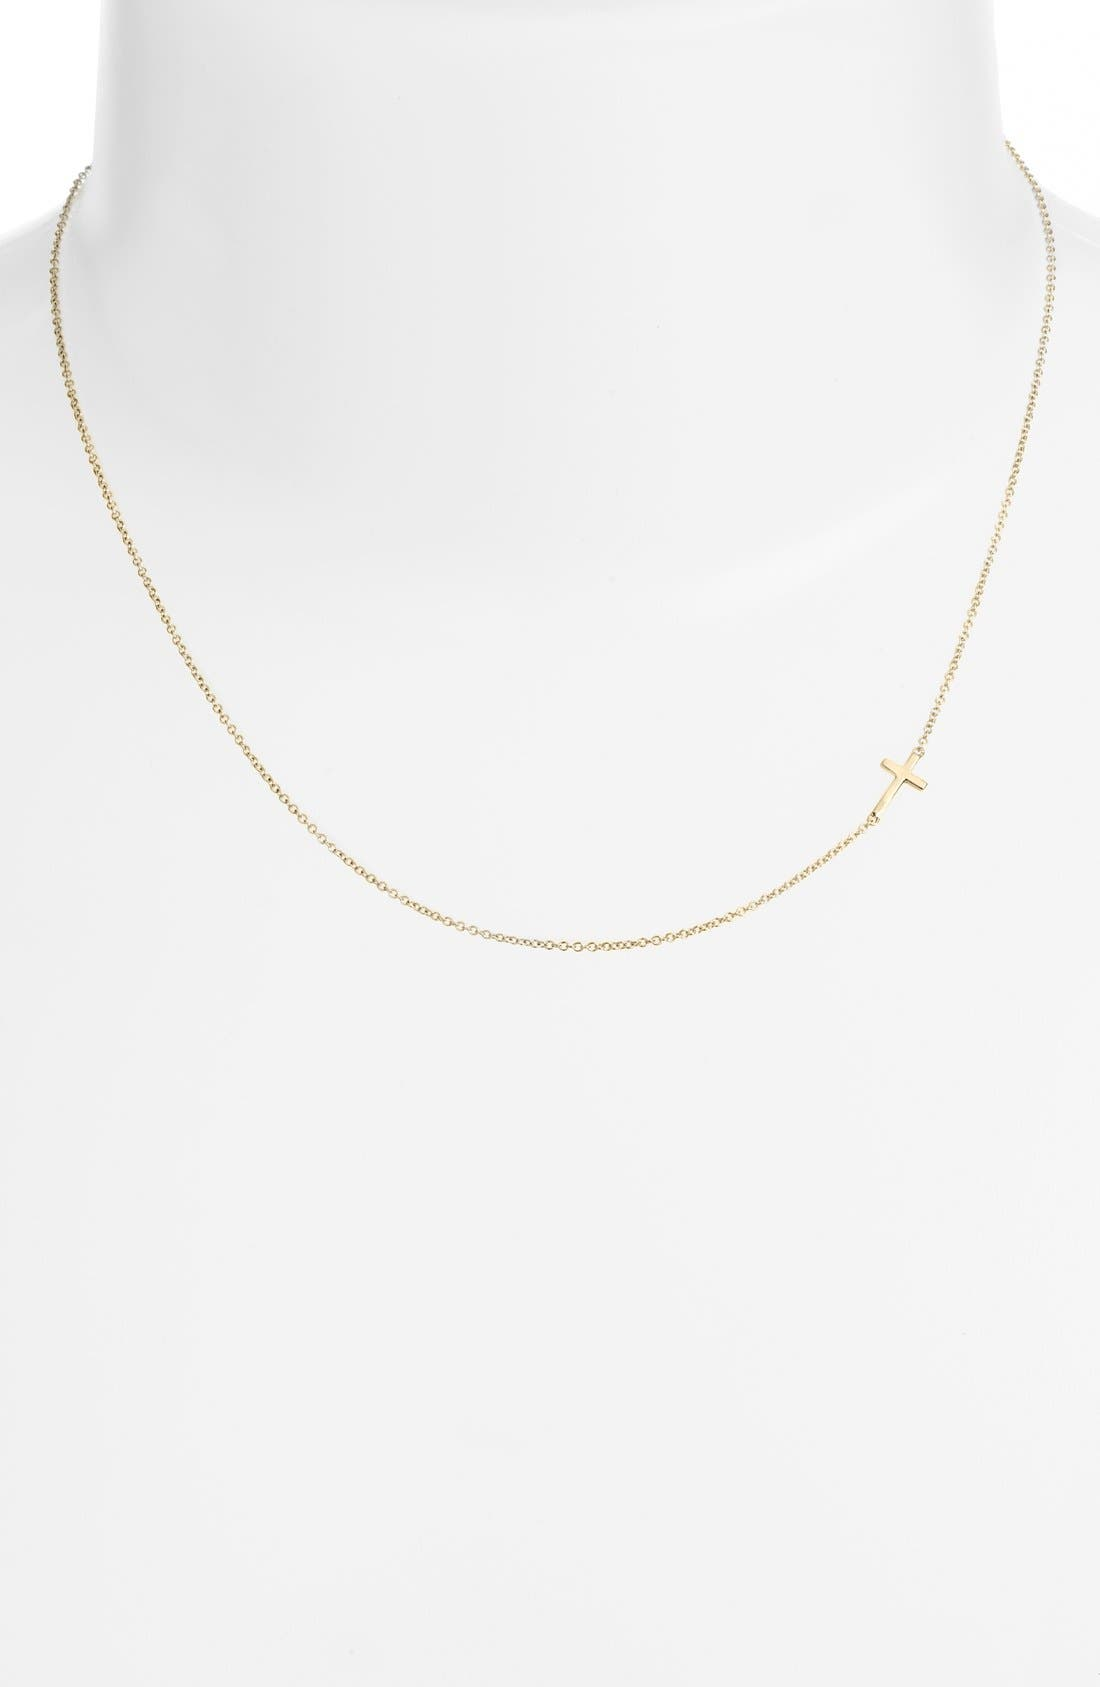 Cross Station Necklace,                             Alternate thumbnail 3, color,                             YELLOW GOLD